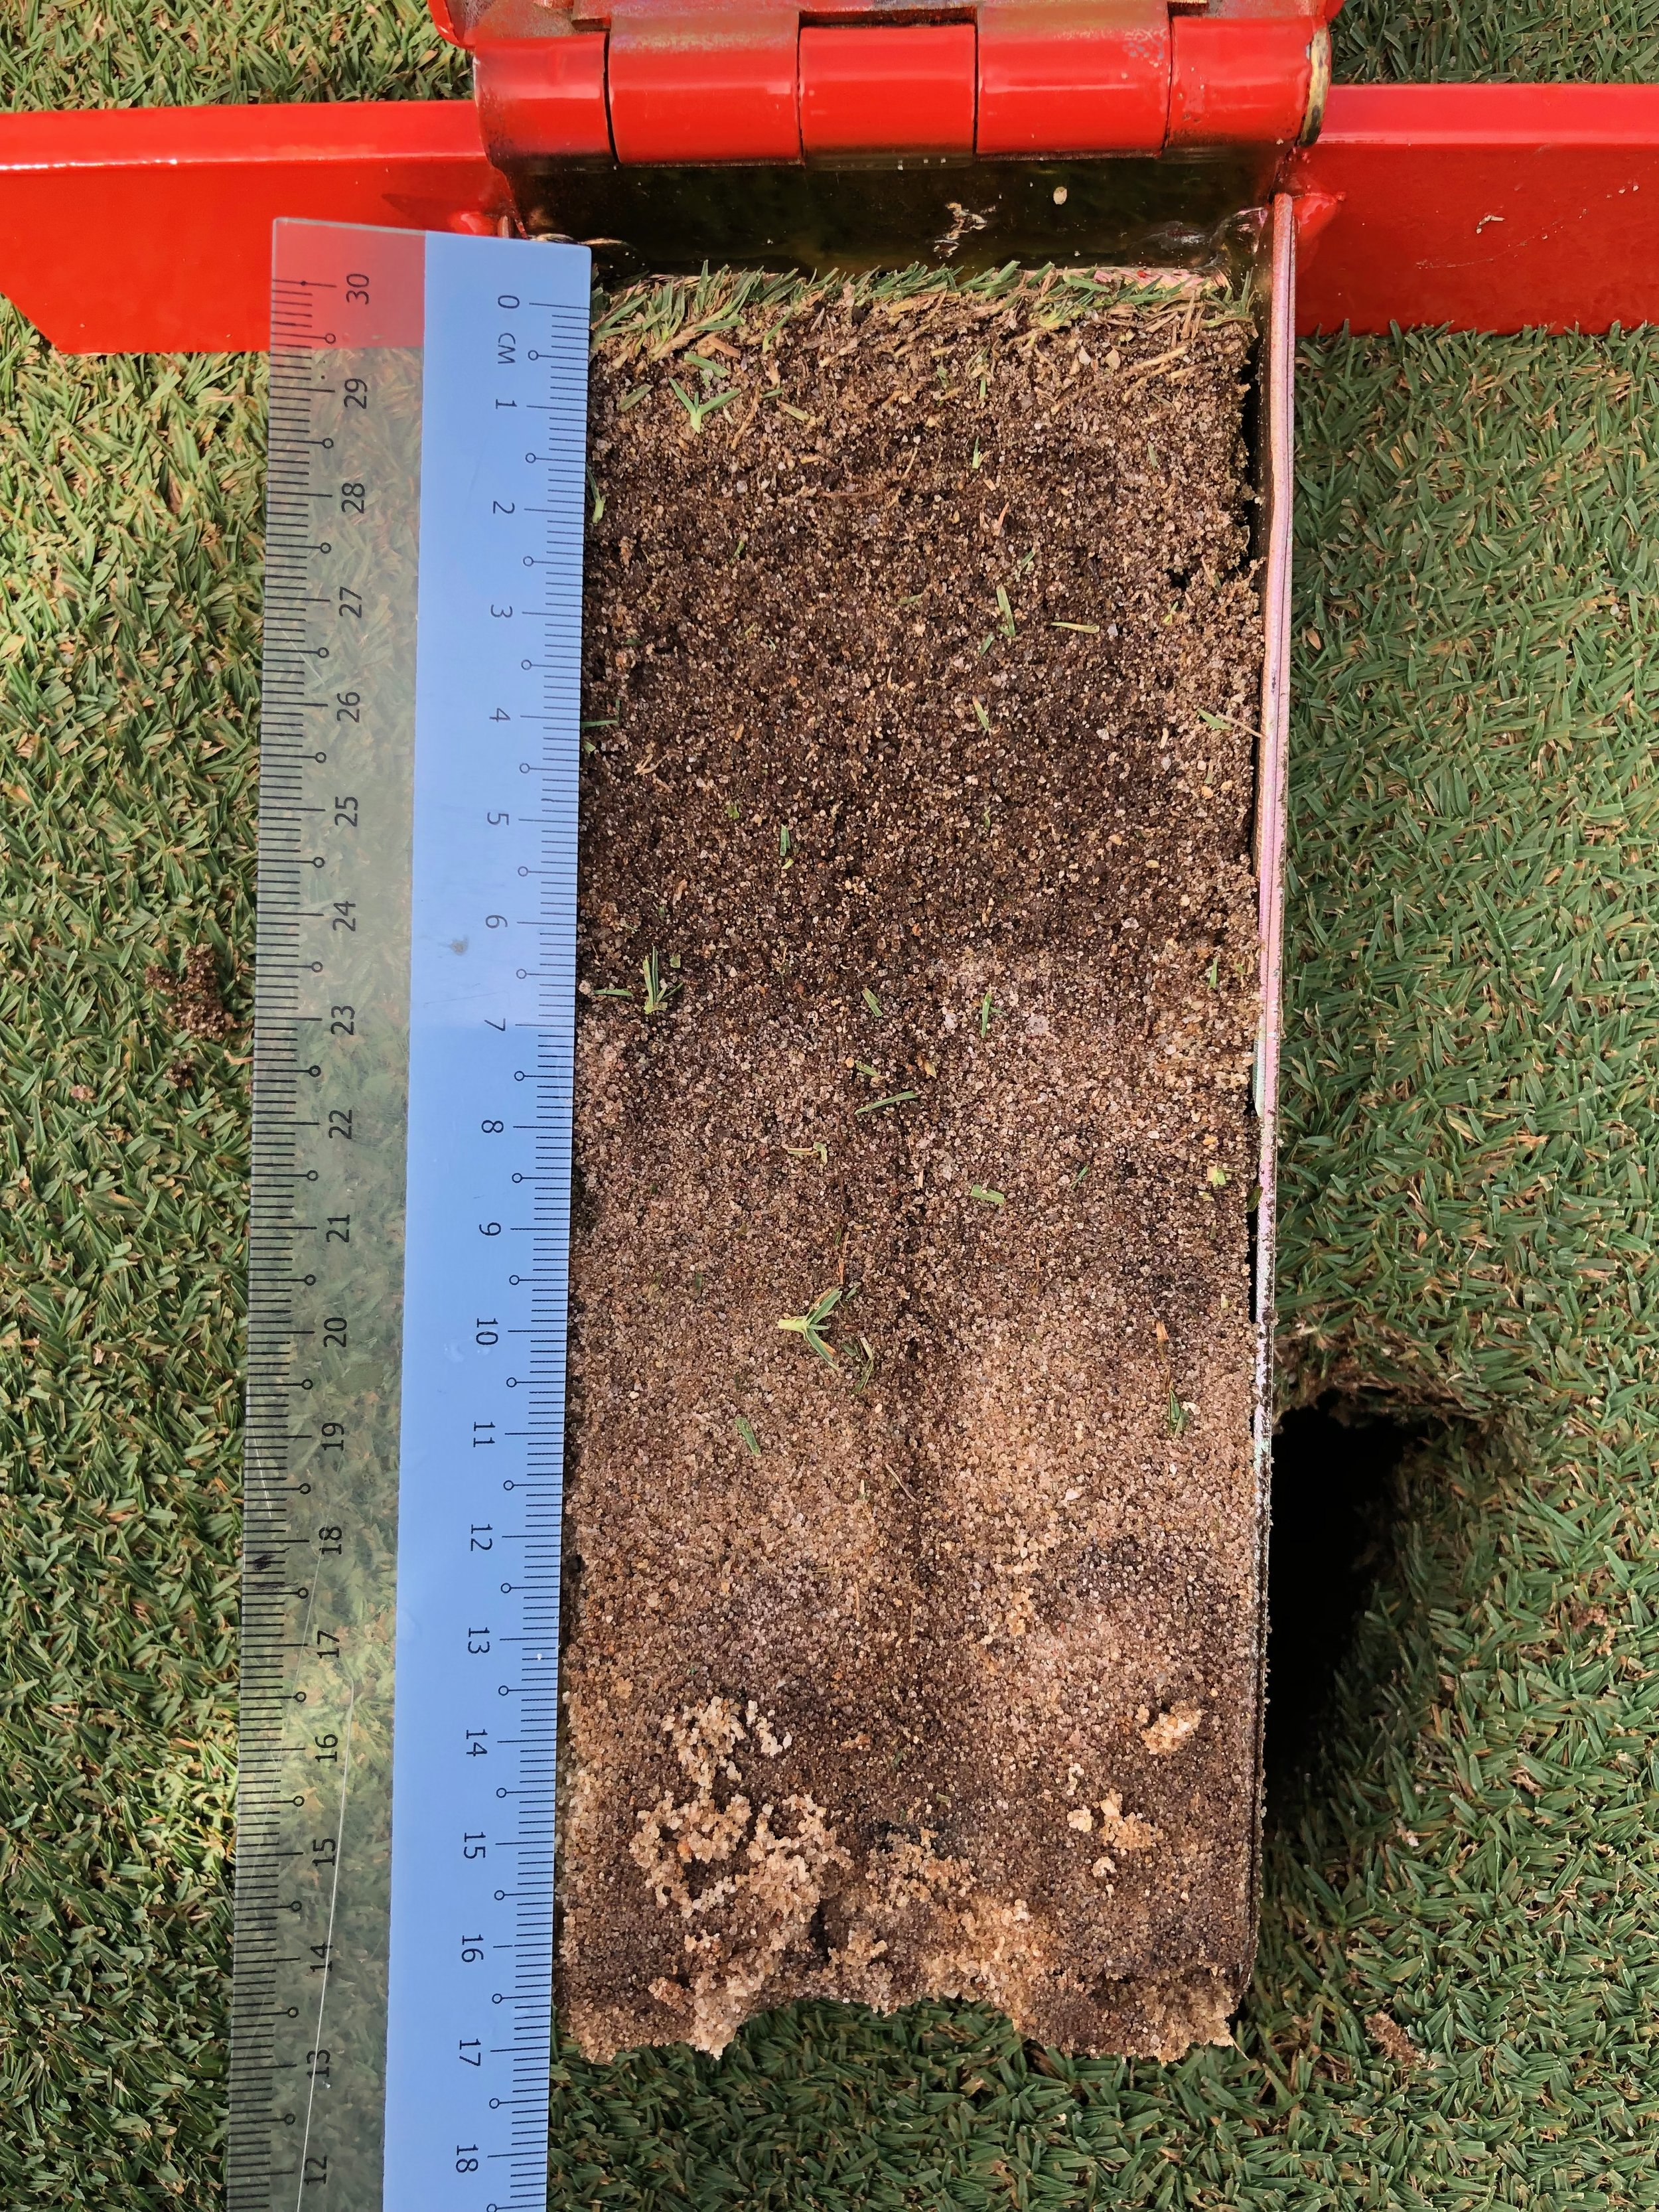 It is difficult to visually measure the organic matter content in a diluted soil profile accurately.